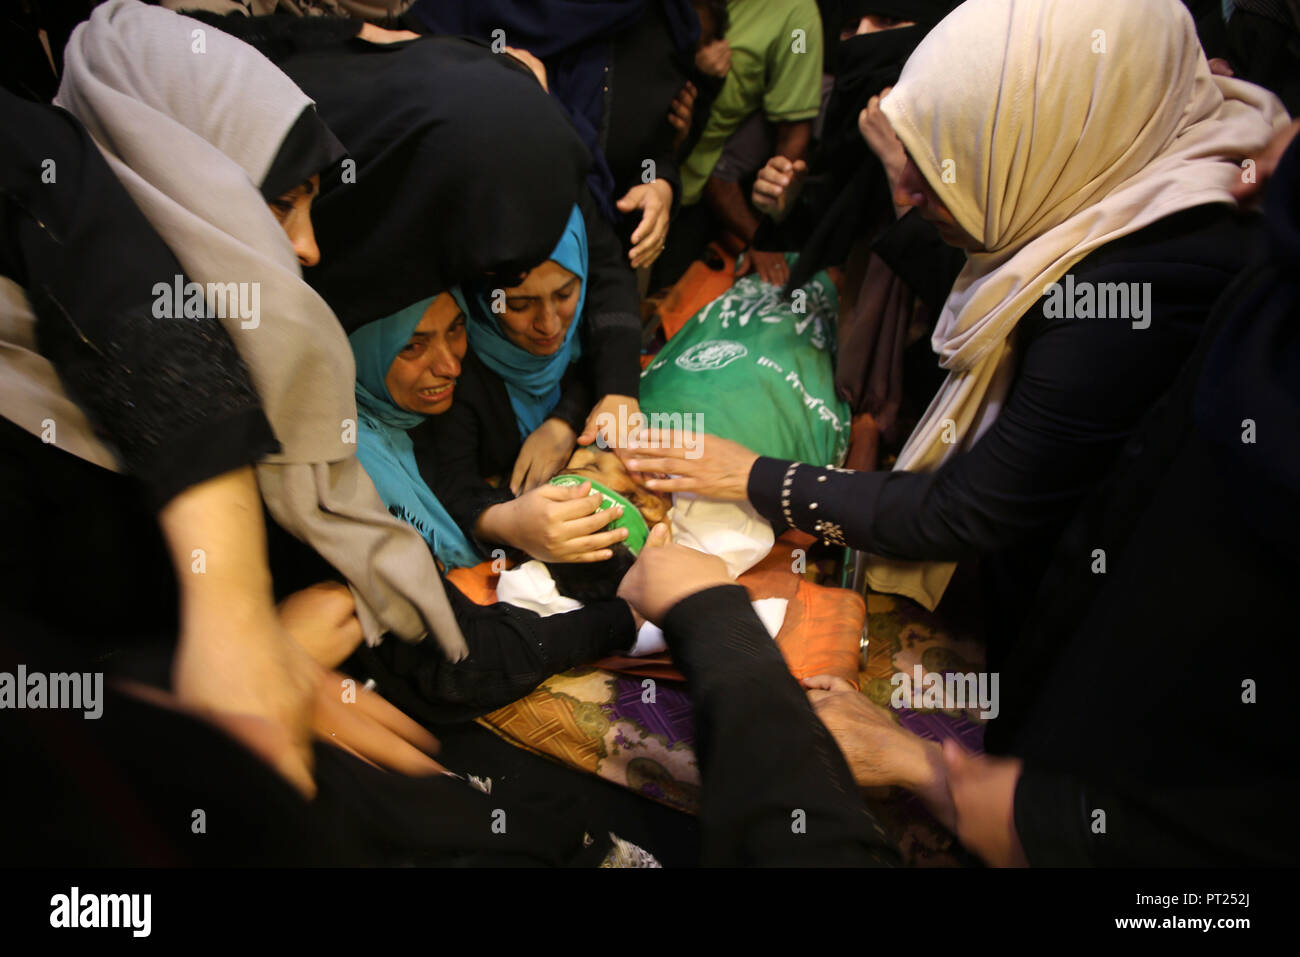 Gaza City, Gaza Strip, Palestinian Territory. 5th Oct, 2018. Relatives of Palestinian boy Faris al-Sersawi, 12, who was shot dead by Israeli froces during clashes in tents protest where Palestinians demand the right to return to their homeland at the Israel-Gaza border, mourn over his body during his funeral in Gaza City on October 6, 2018 Credit: Dawoud Abo Alkas/APA Images/ZUMA Wire/Alamy Live News - Stock Image